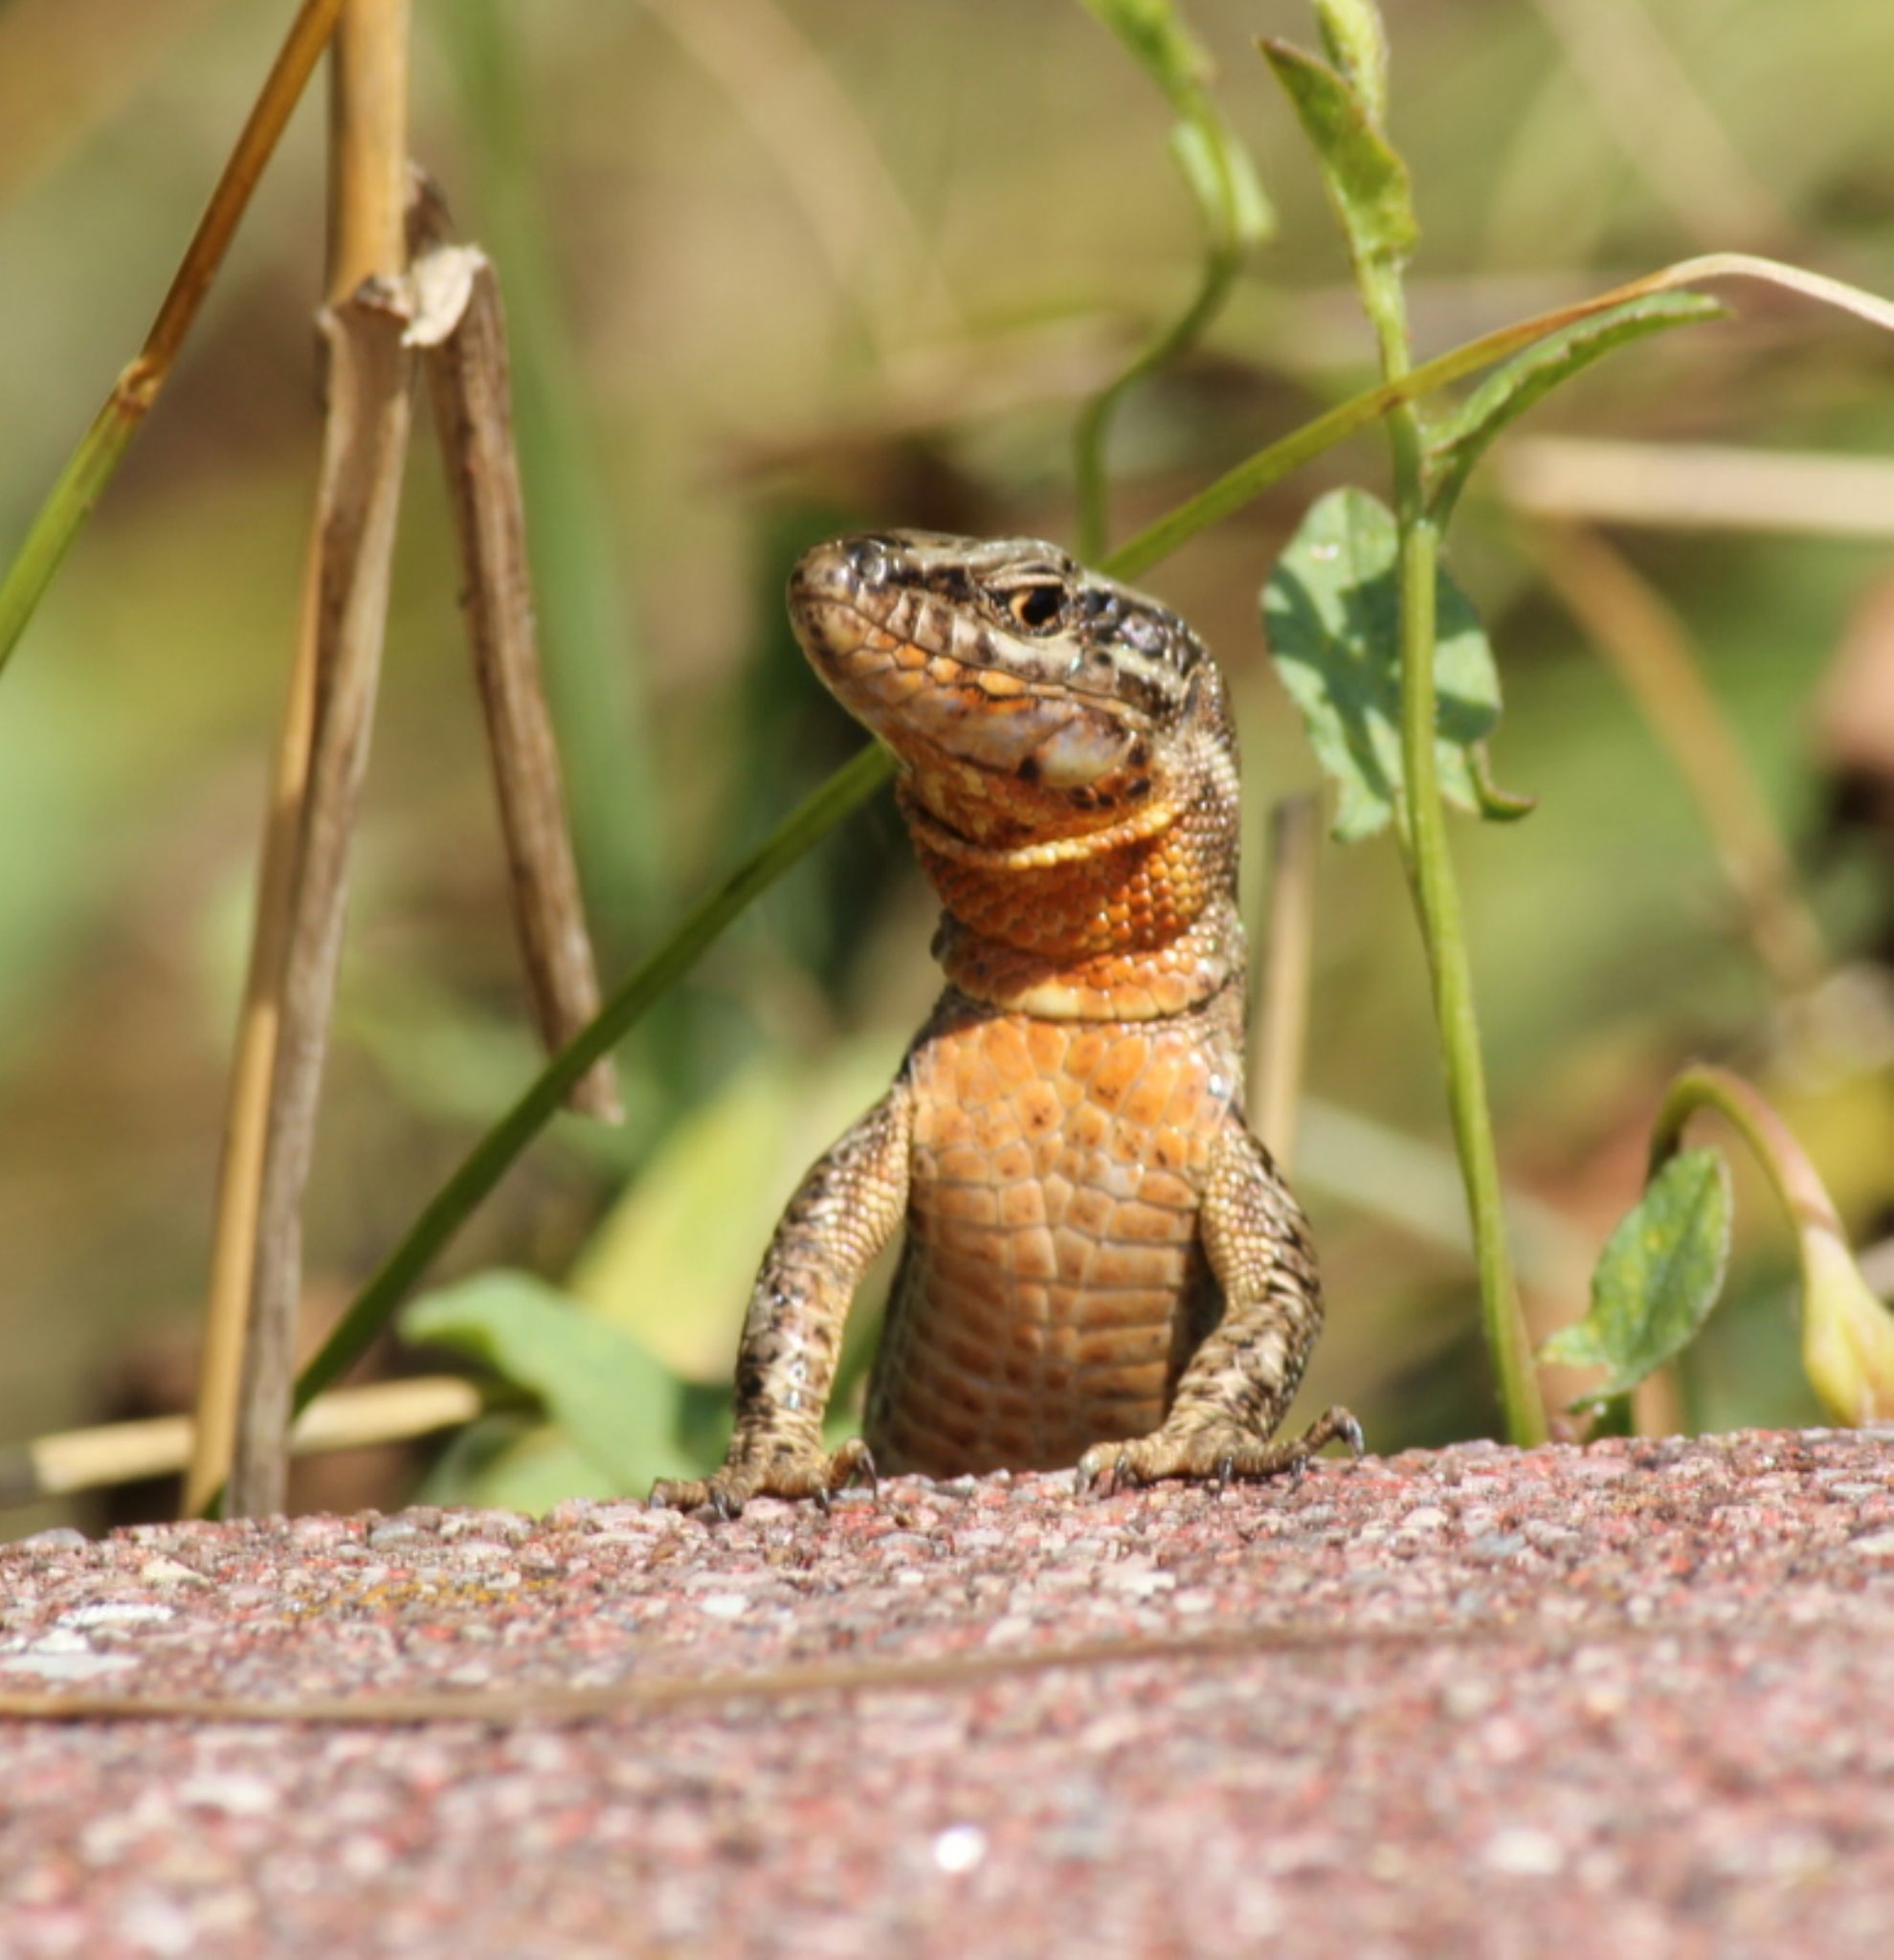 Lizard by Henry Geerling